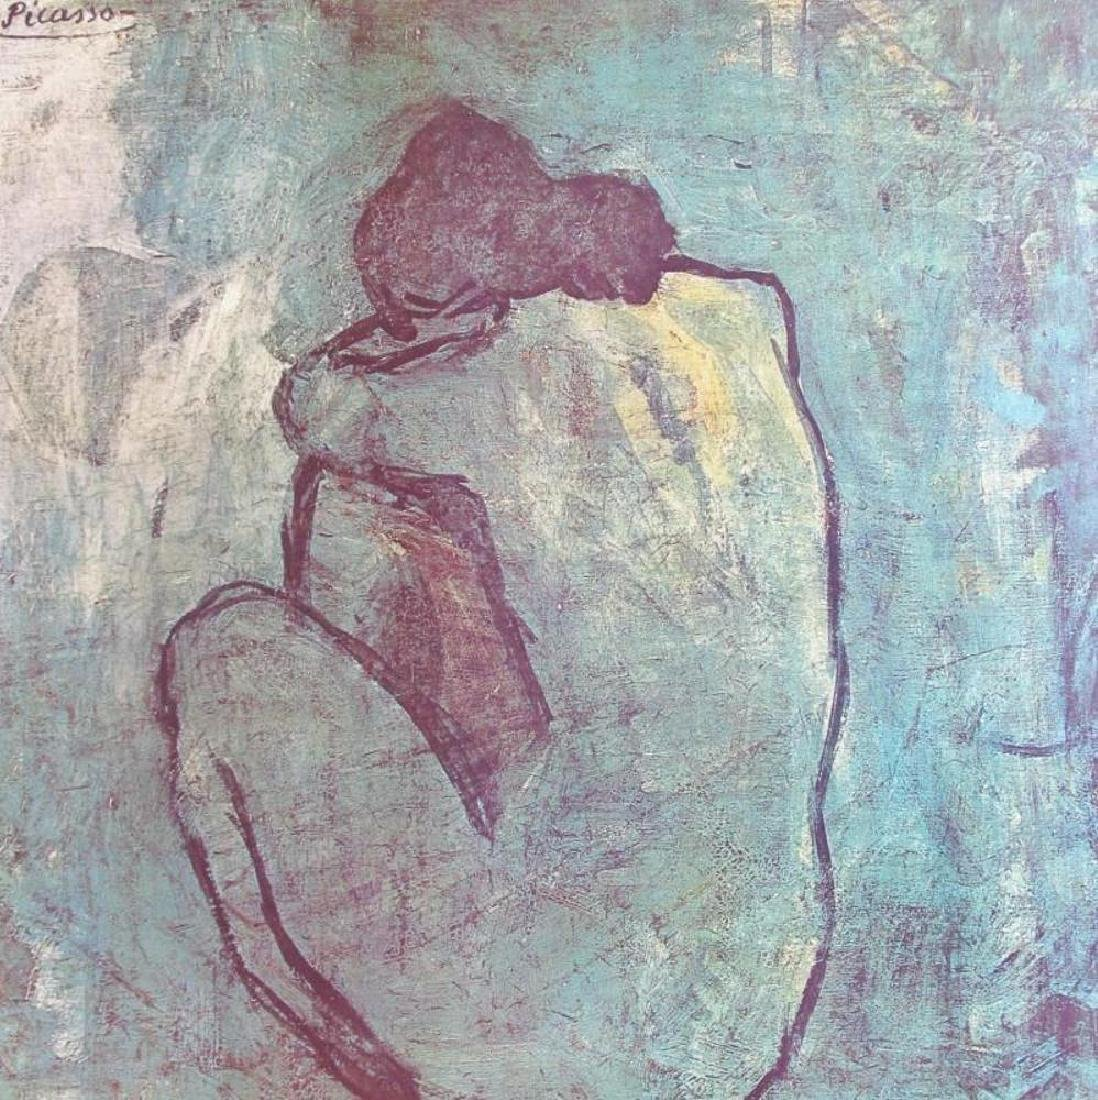 1983 Poster Picasso The Blue Nude Seated 1902, Plate - 2